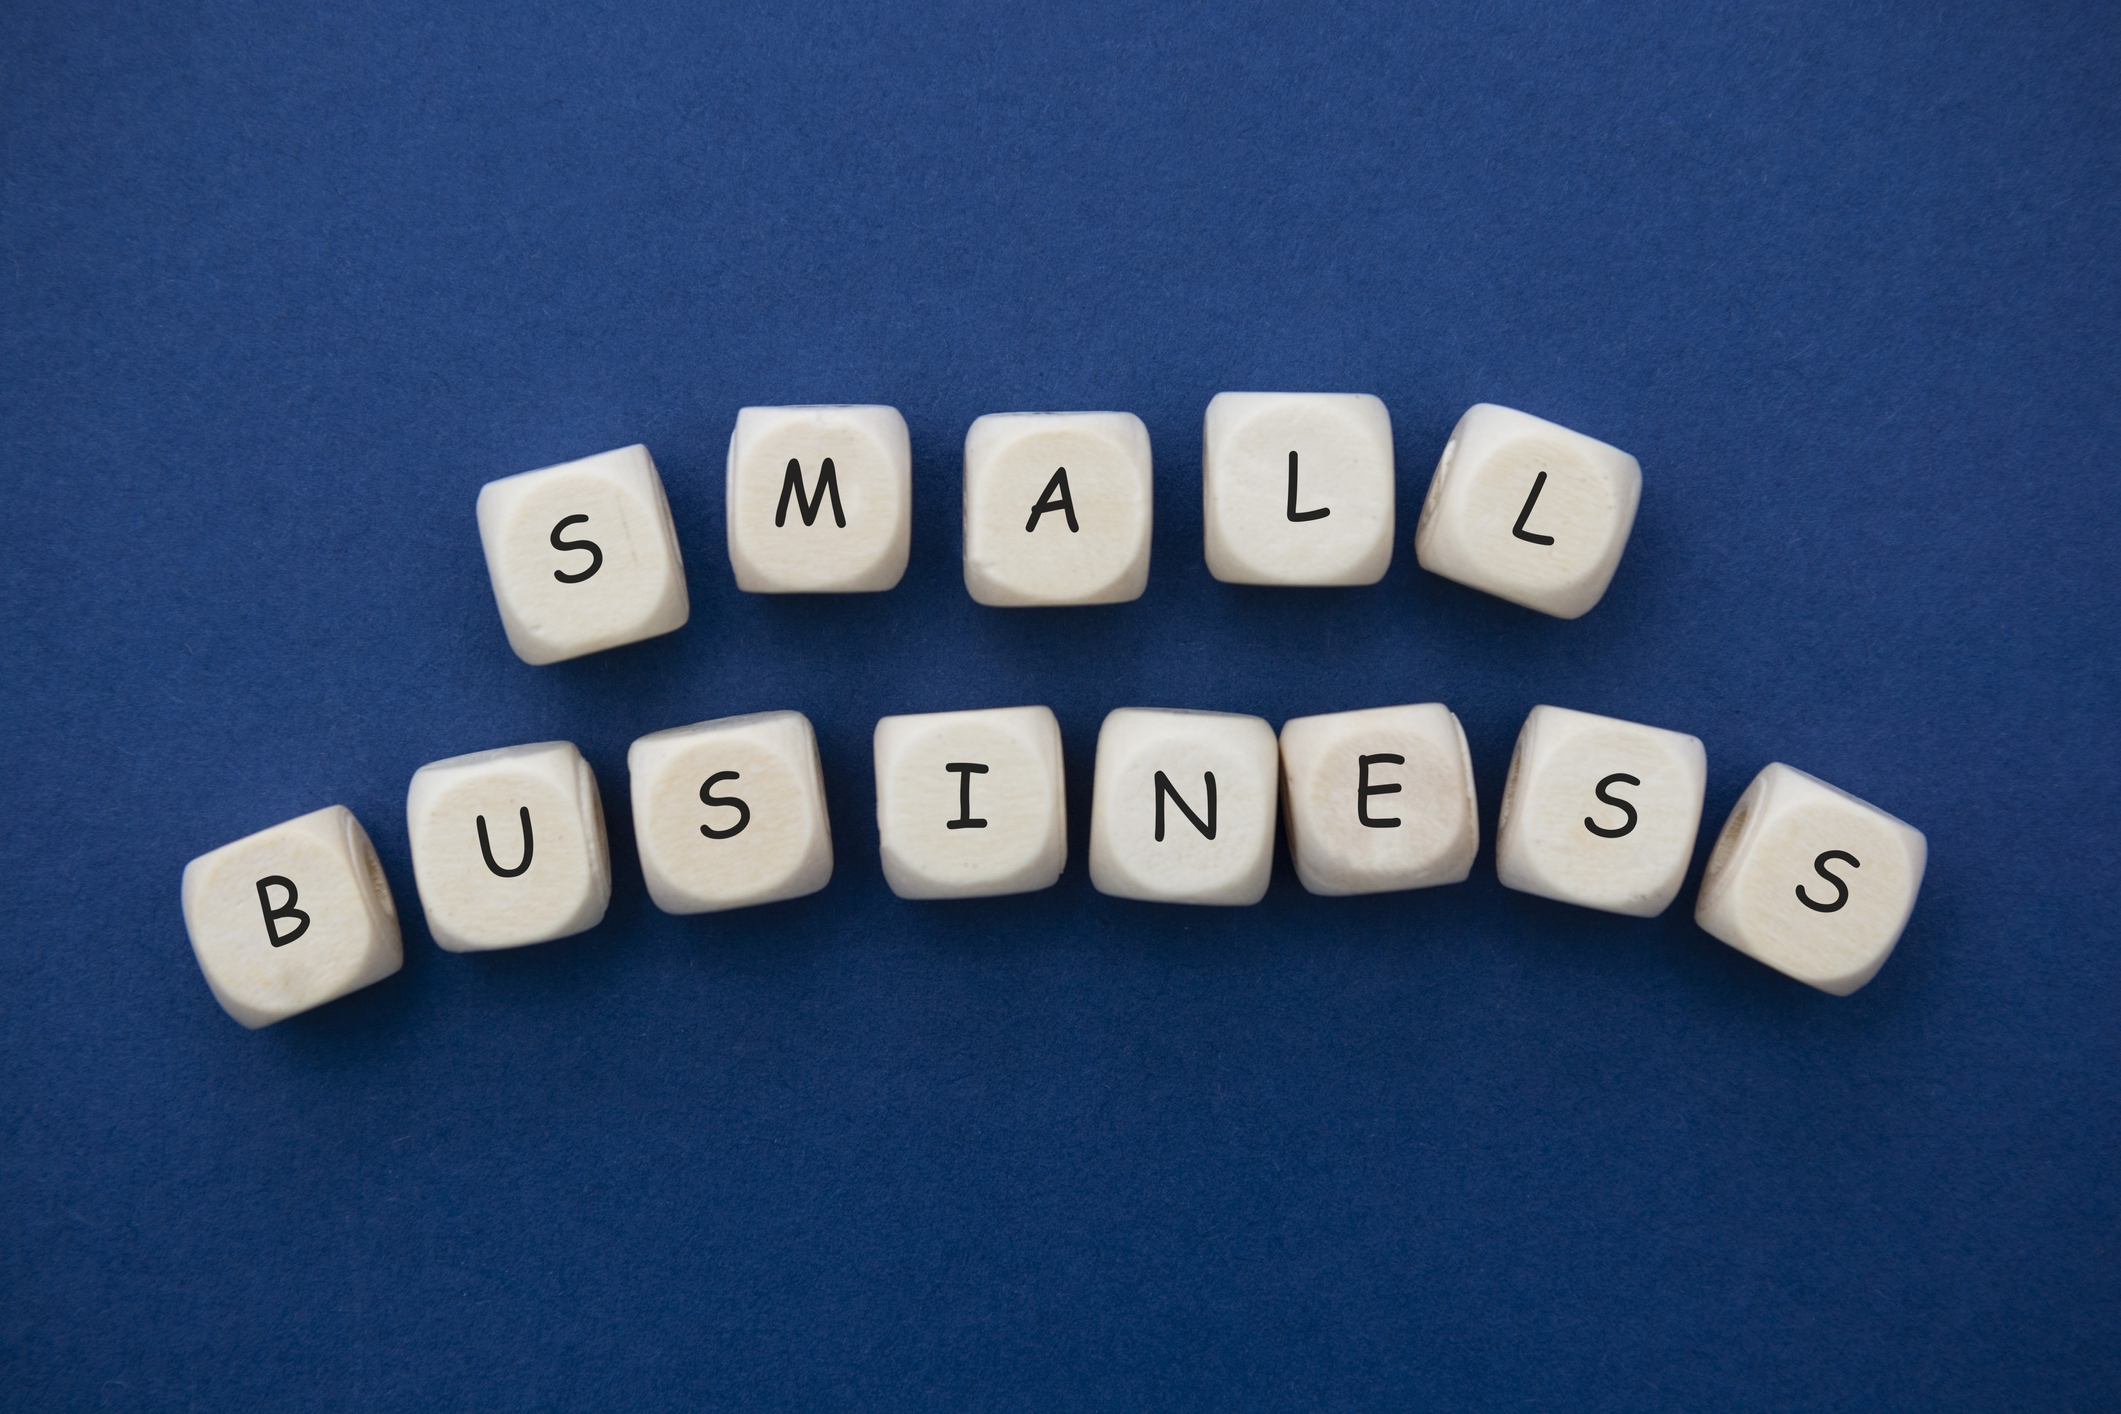 How to improve small business efficiency